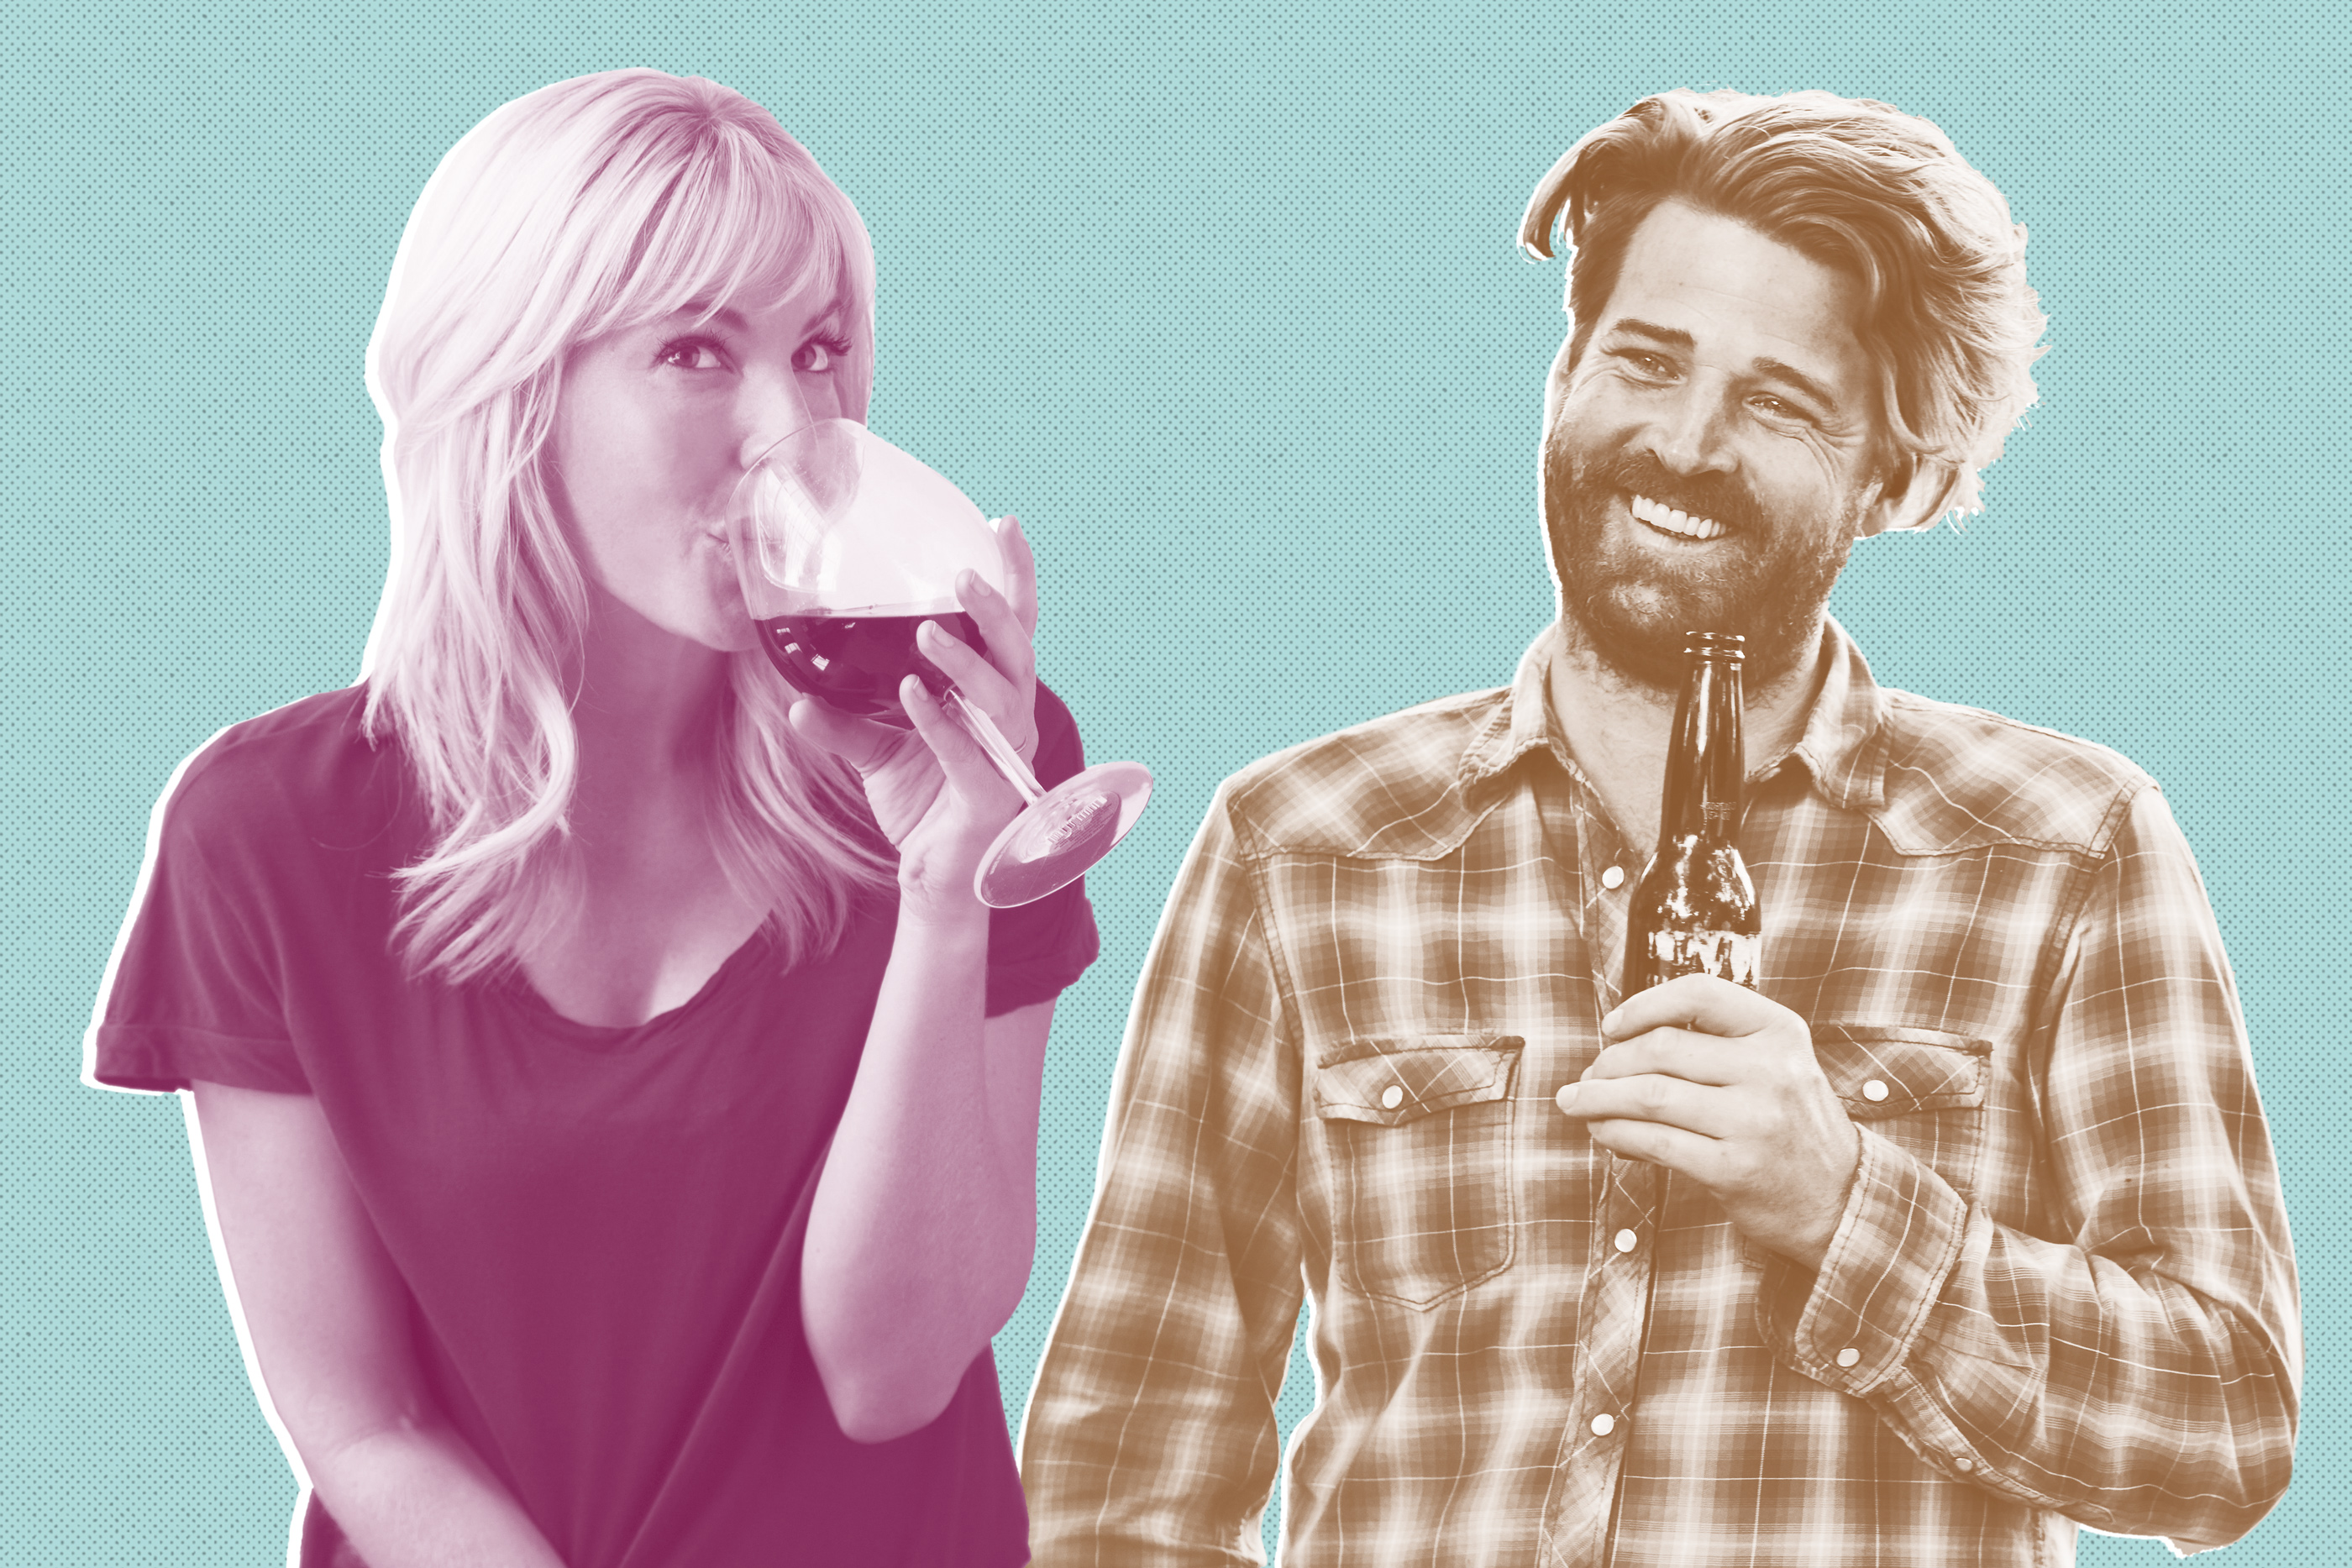 Dissecting the Double Standard of Wine Moms v. Beer Dads